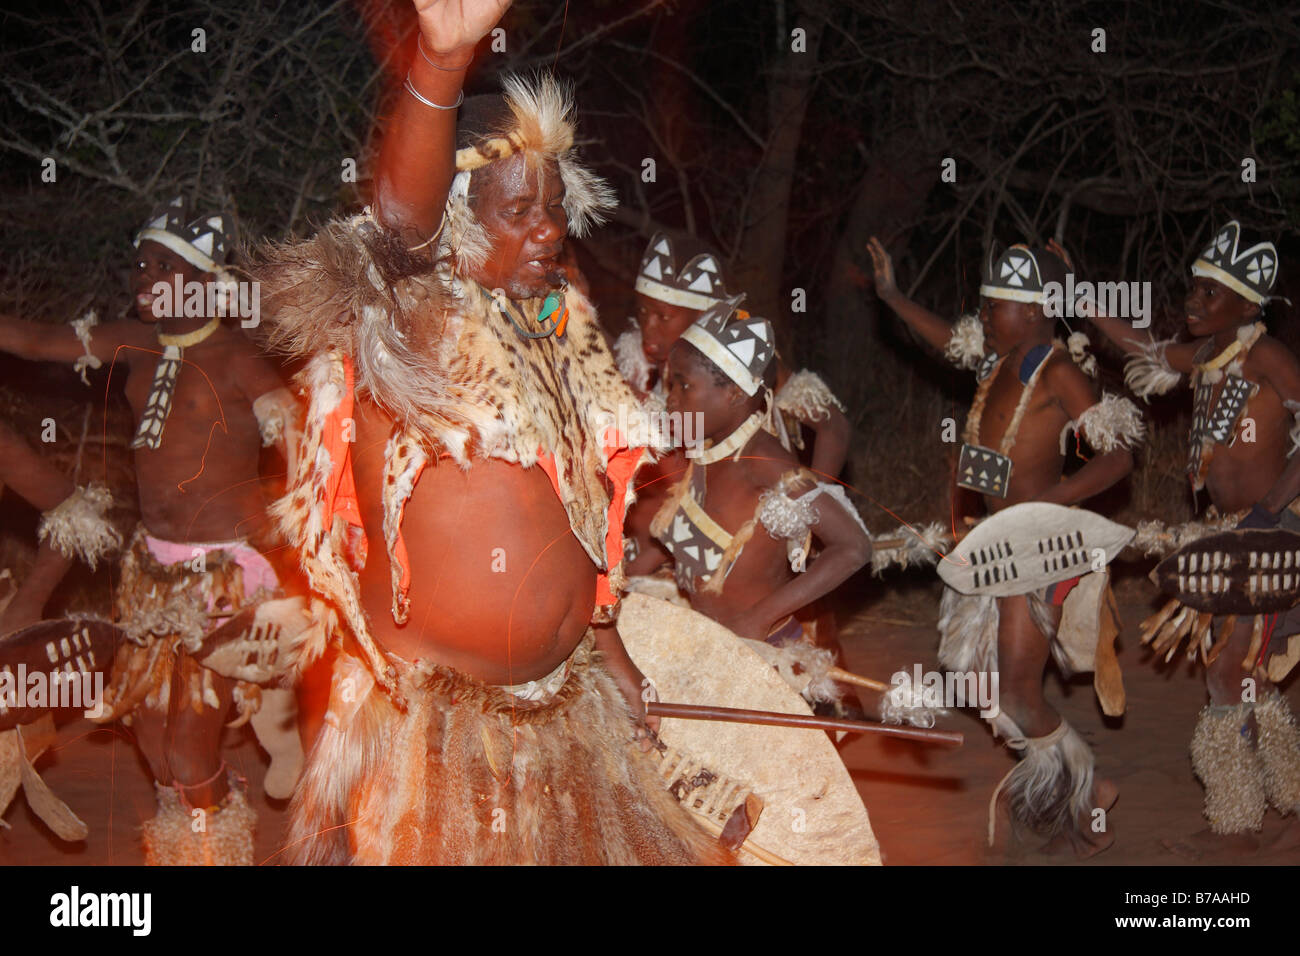 Tonga dancers during an outdoors evening dance performance - Stock Image